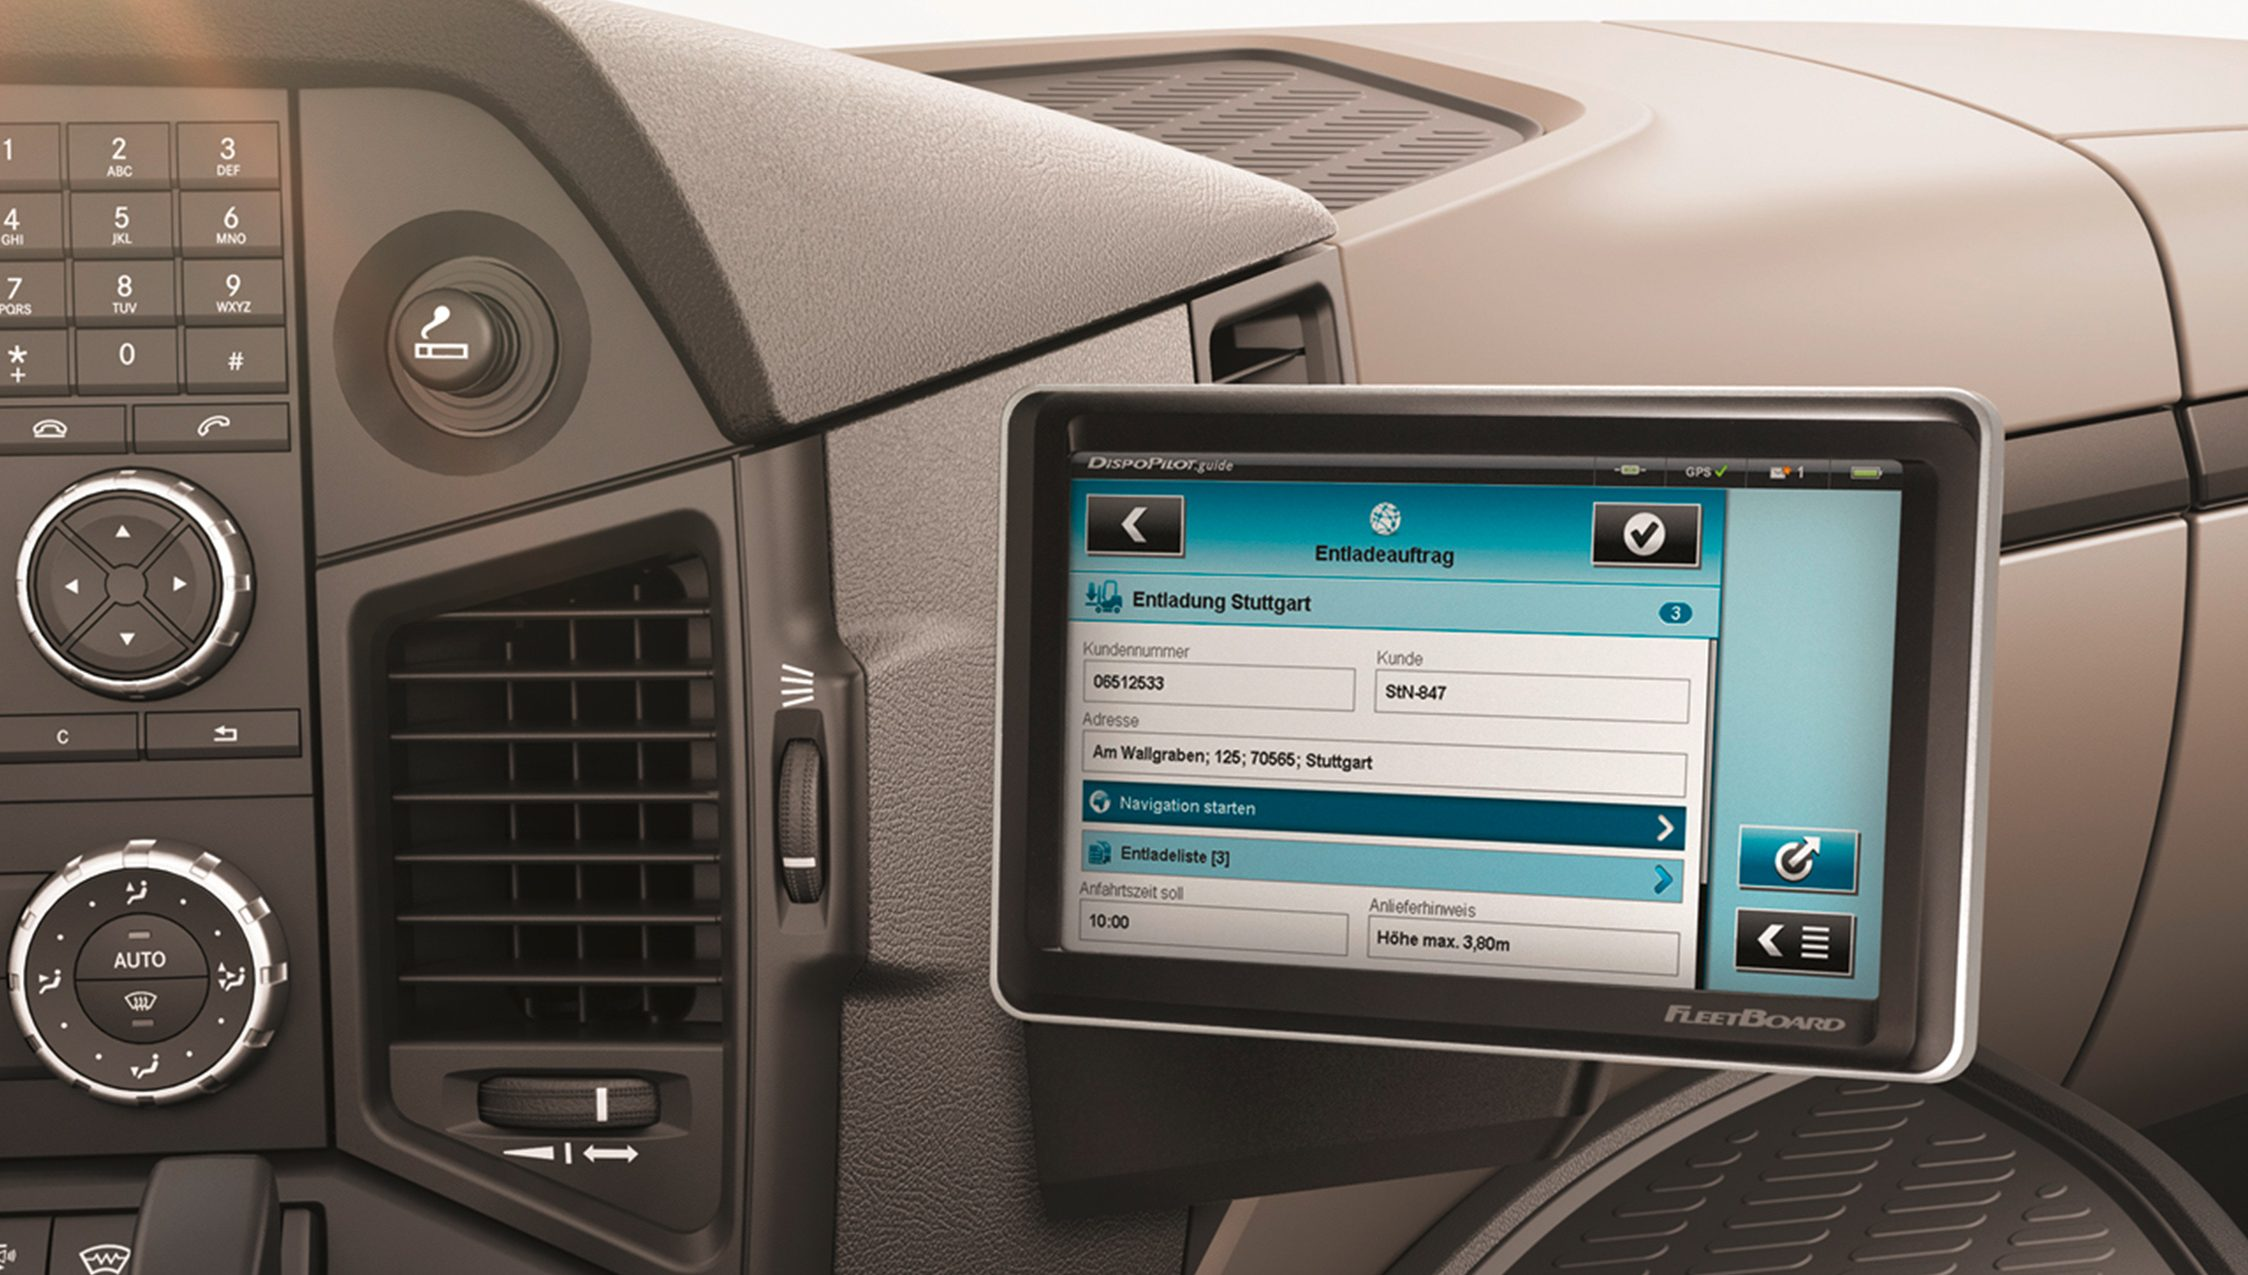 Mercedes-Benz-Atego-LKW-Verteilerverkehr-Interieur-Display-digital-Multimedia